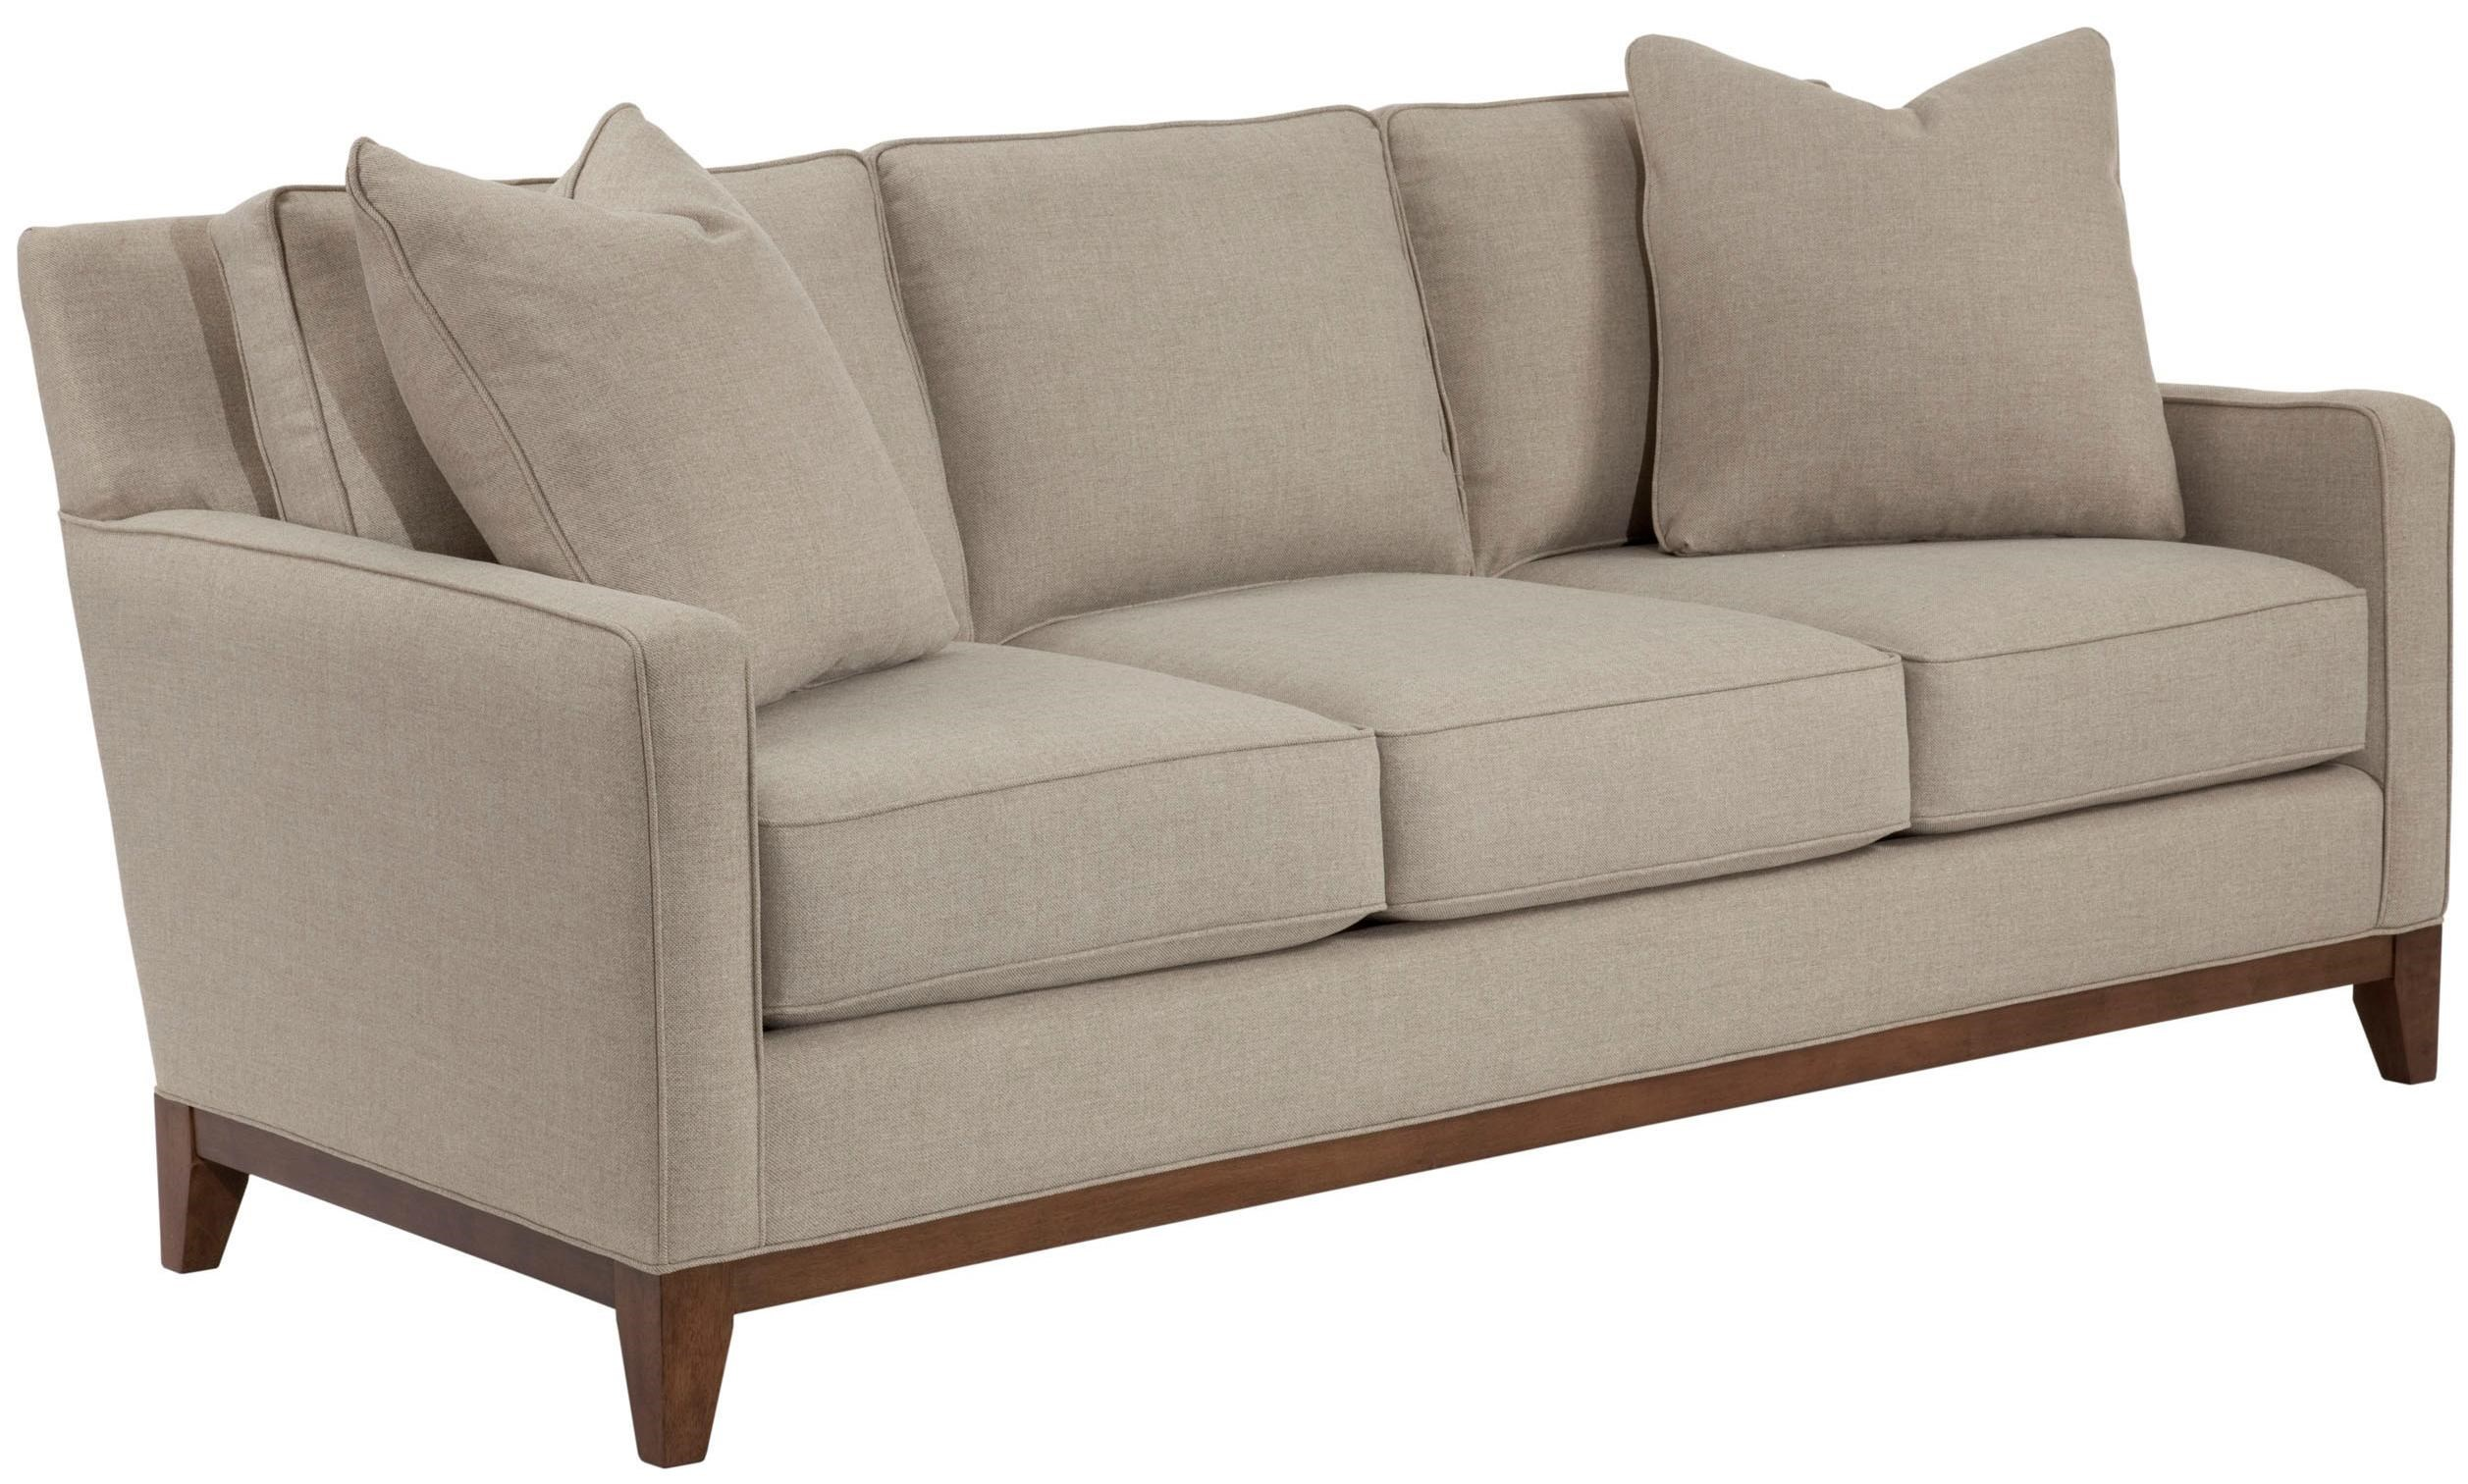 Related keywords suggestions for suede furniture for Suede furniture